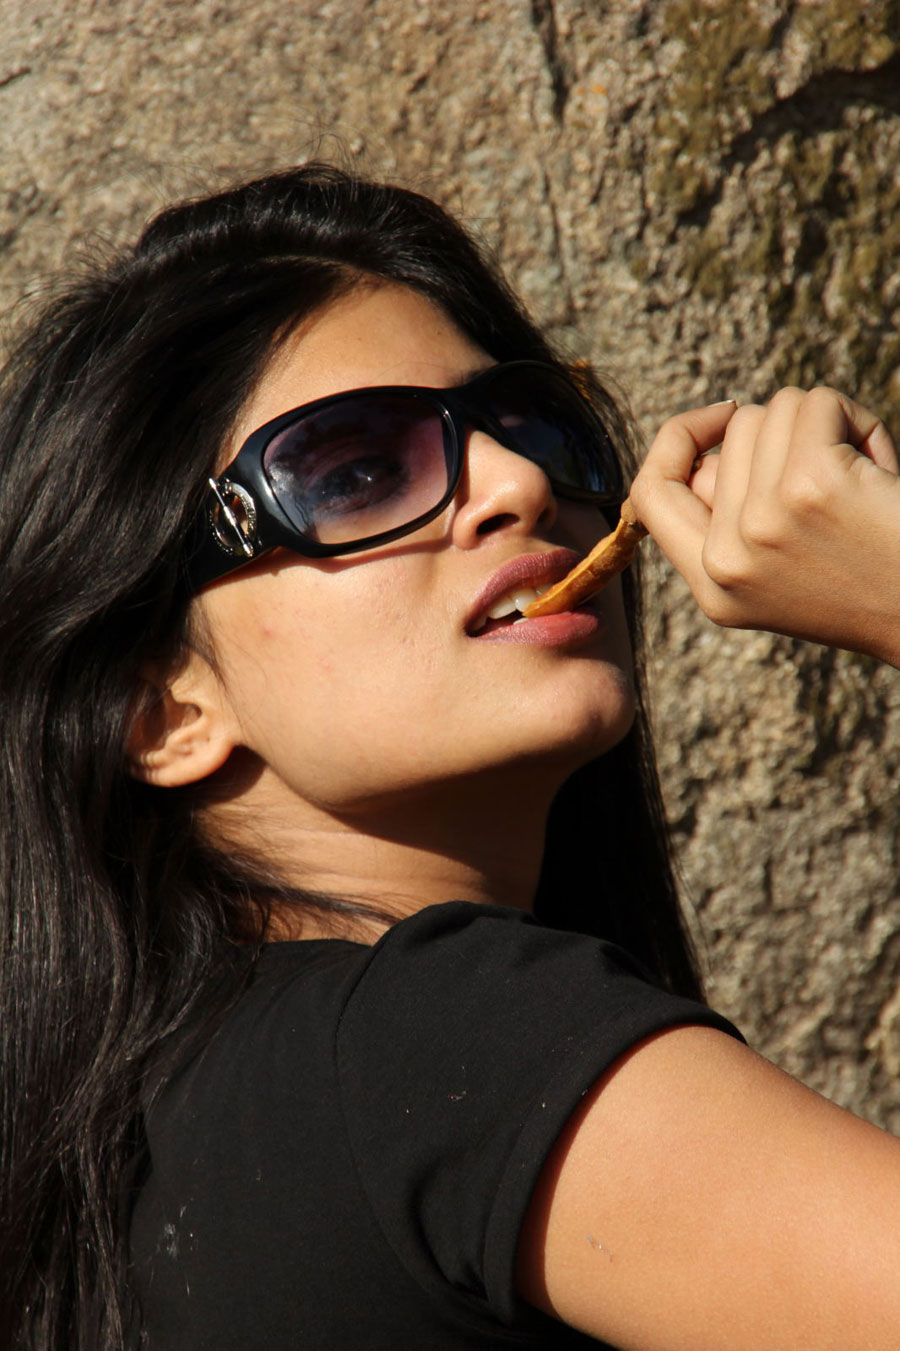 Shwetha Pandit from Theater Lo Movie Photo Gallery Swetha20